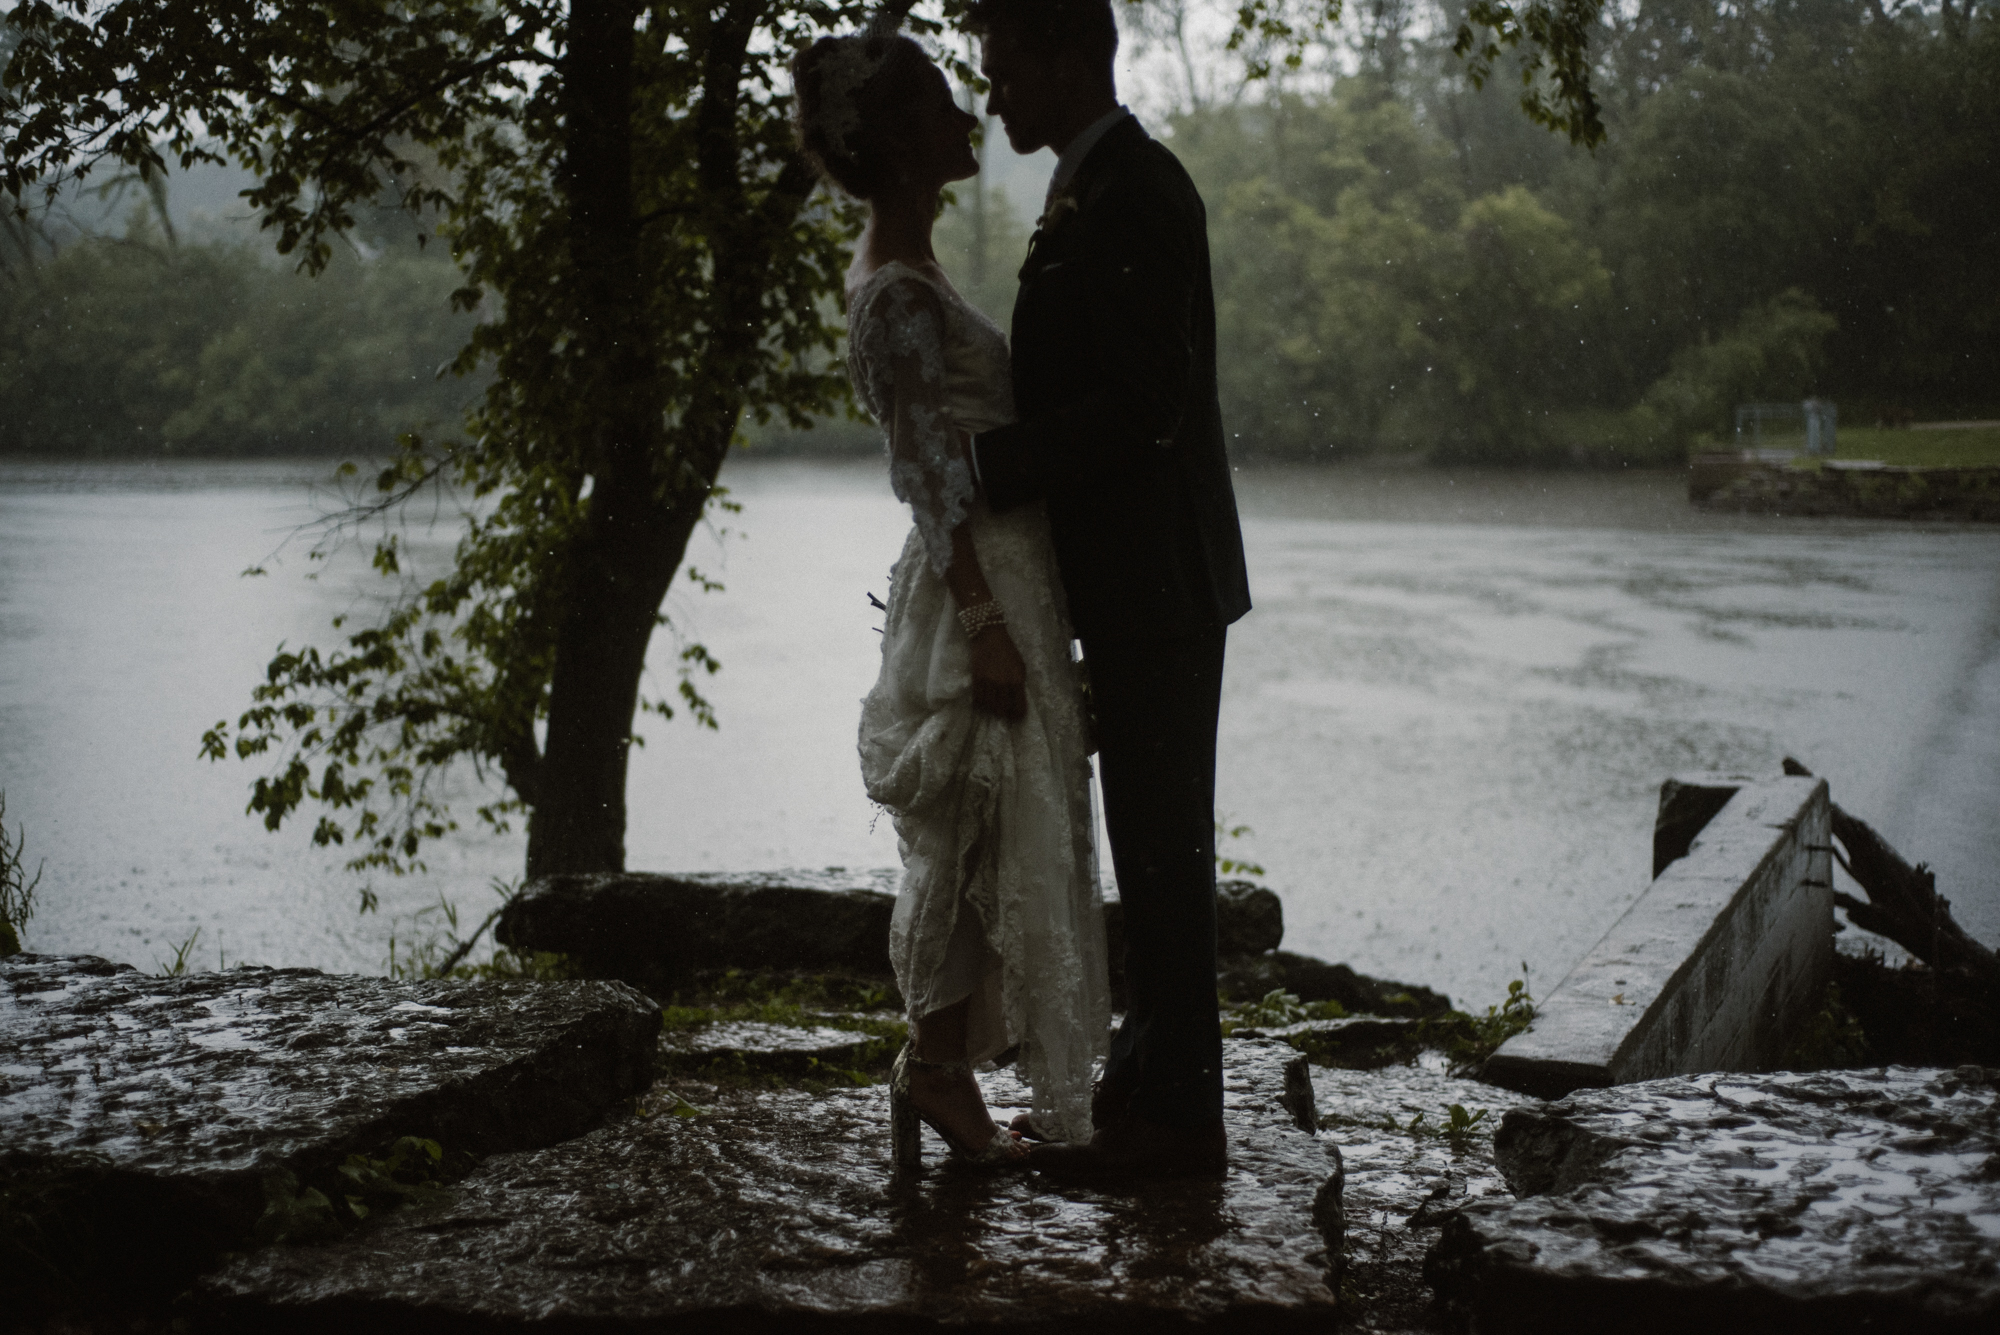 Mairi and Jude - Rainy Backyard Wedding - Intimate Wedding - Fun Reception Photos - Chicago Wedding Photographer - Catholic Wedding - White Sails Creative - Virginia Backyard Wedding Photographer_40.jpg